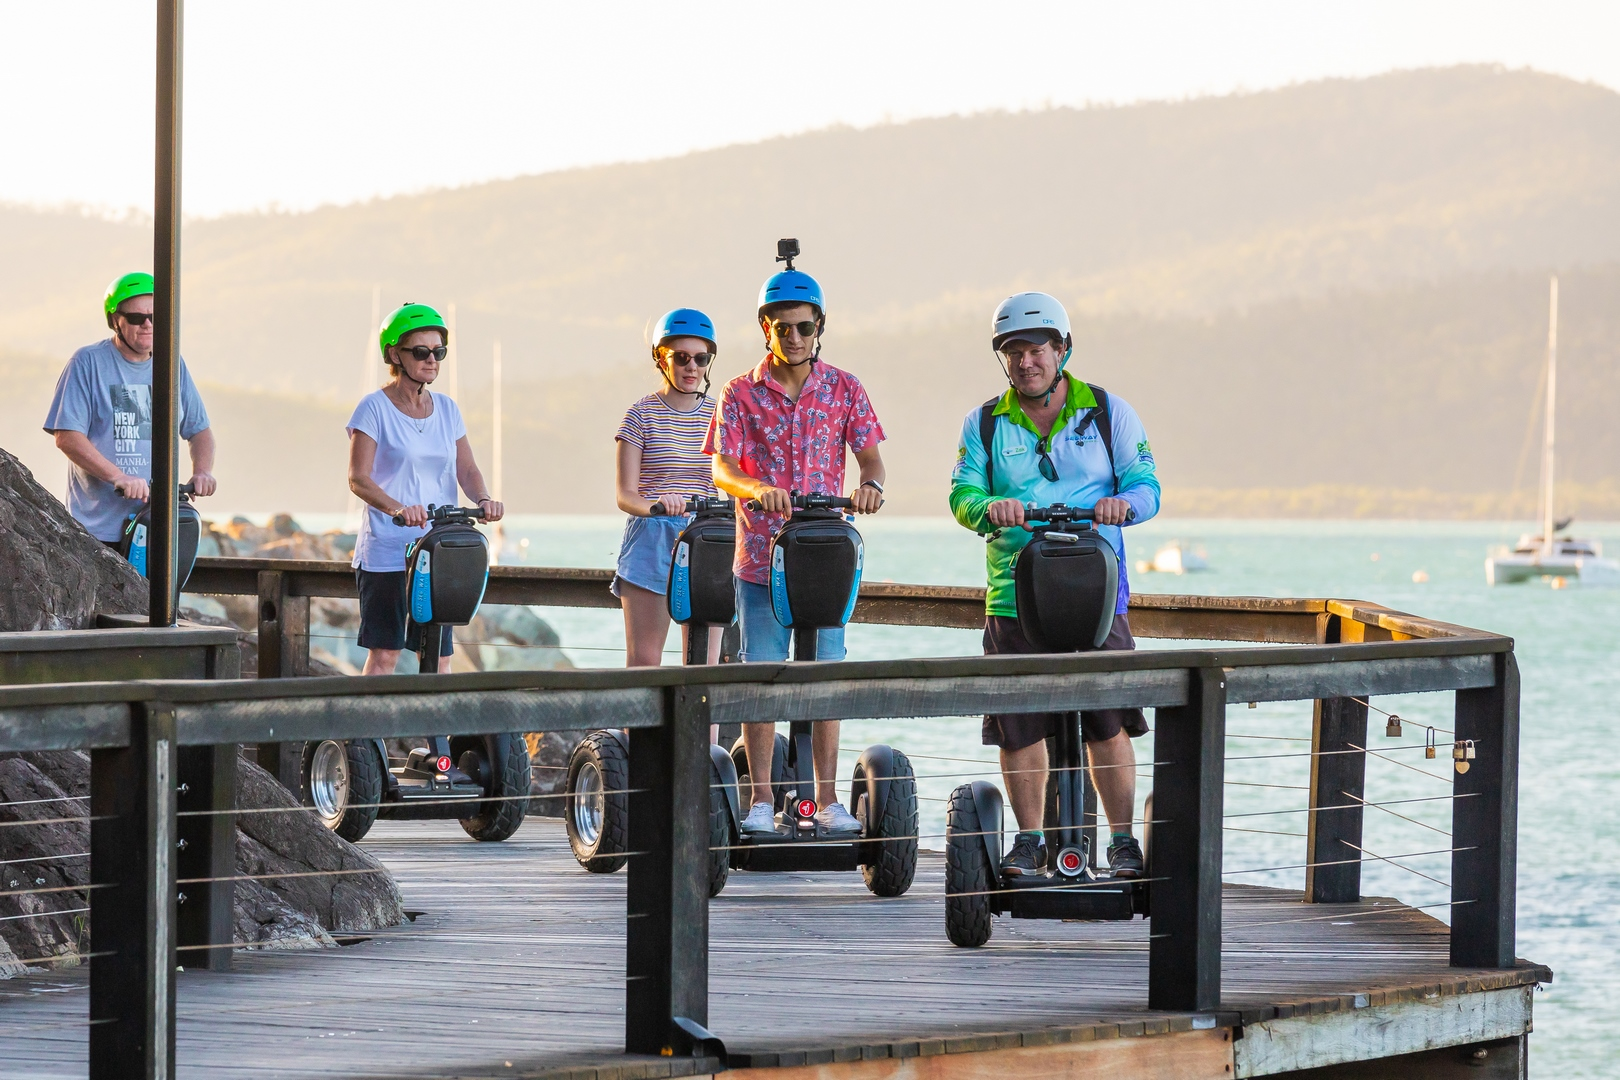 Segway Sunset and Boardwalk Tour (includes dinner)